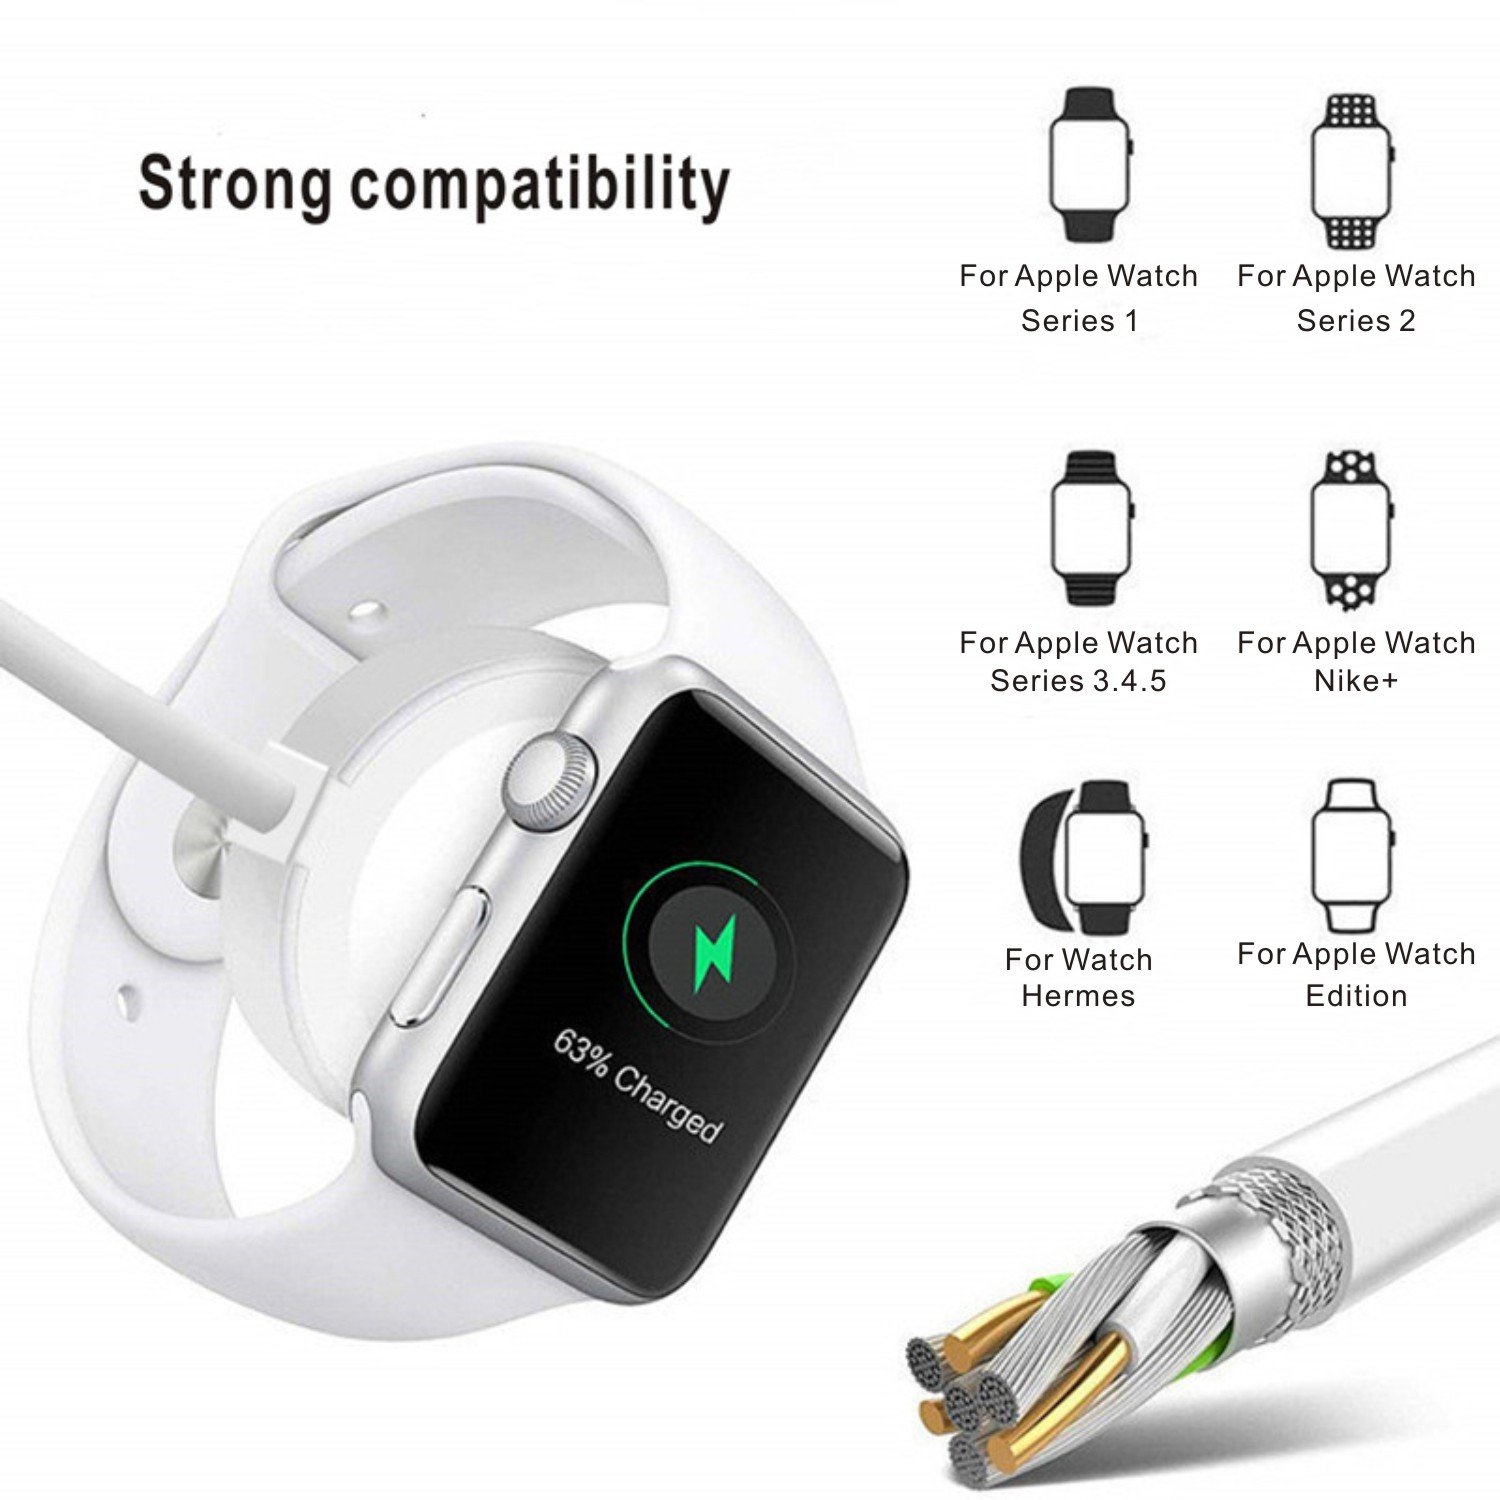 Phone Charger With Smartwatch Dock 4in1,3in1,2in1 USB Data Cable Magnetic Micro type-C Fast Charging Wire For Apple Watch iWatch